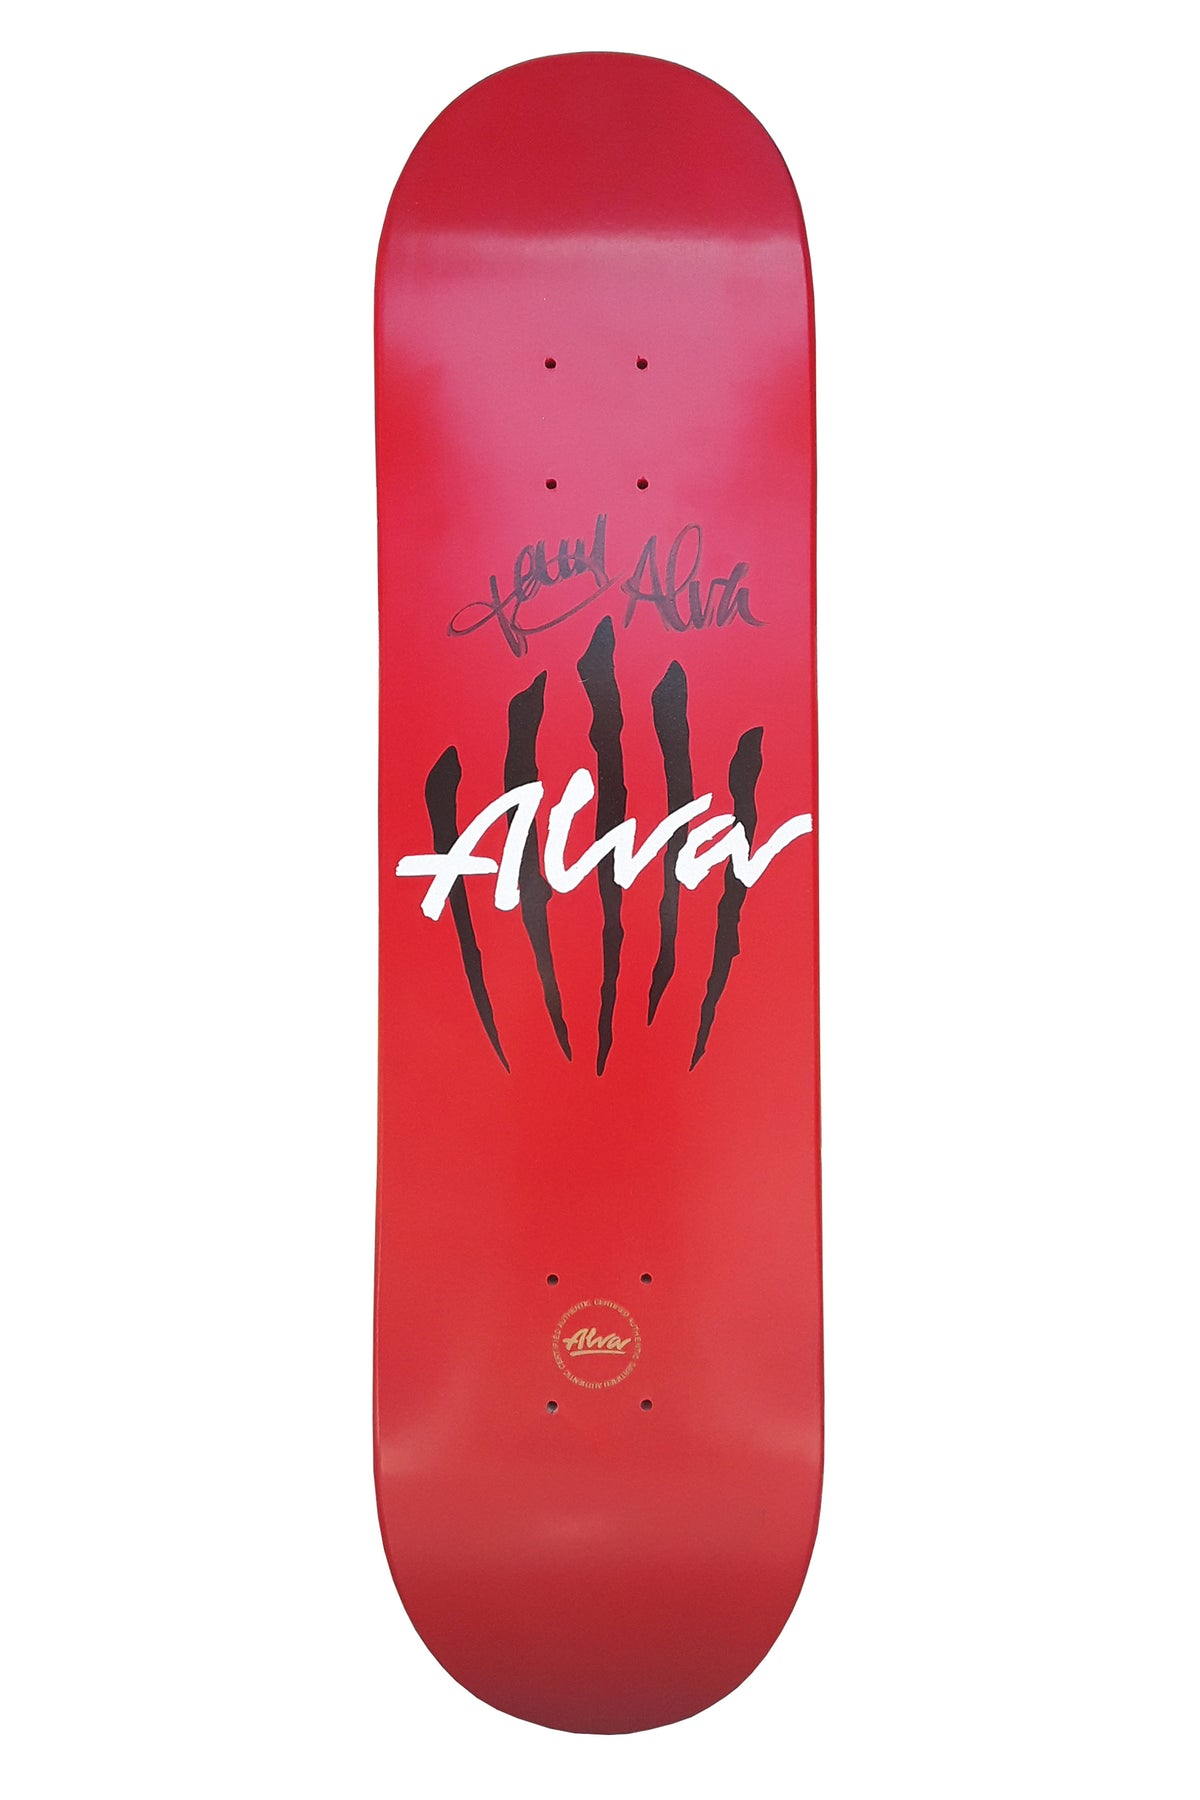 TONY ALVA SIGNED SCRATCH 8.0